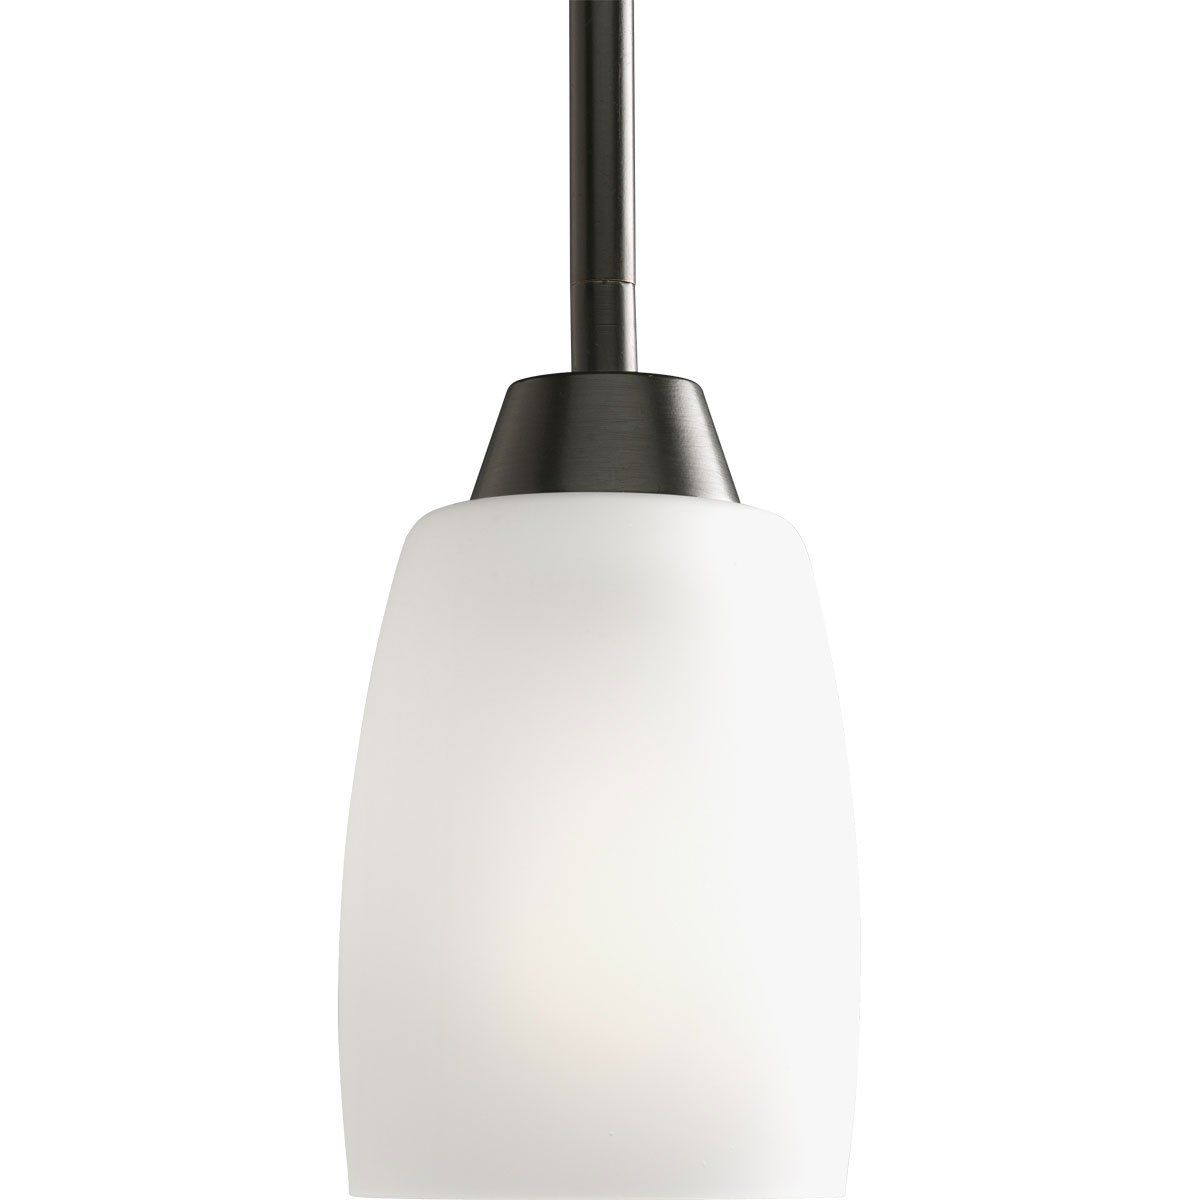 Progress Lighting P5108-20EBWB 1-Light Compact Fluorescent Mini-Pendant with Elegant Arm and Clear Etched Glass Using A GU24 Lamp, Antique Bronze